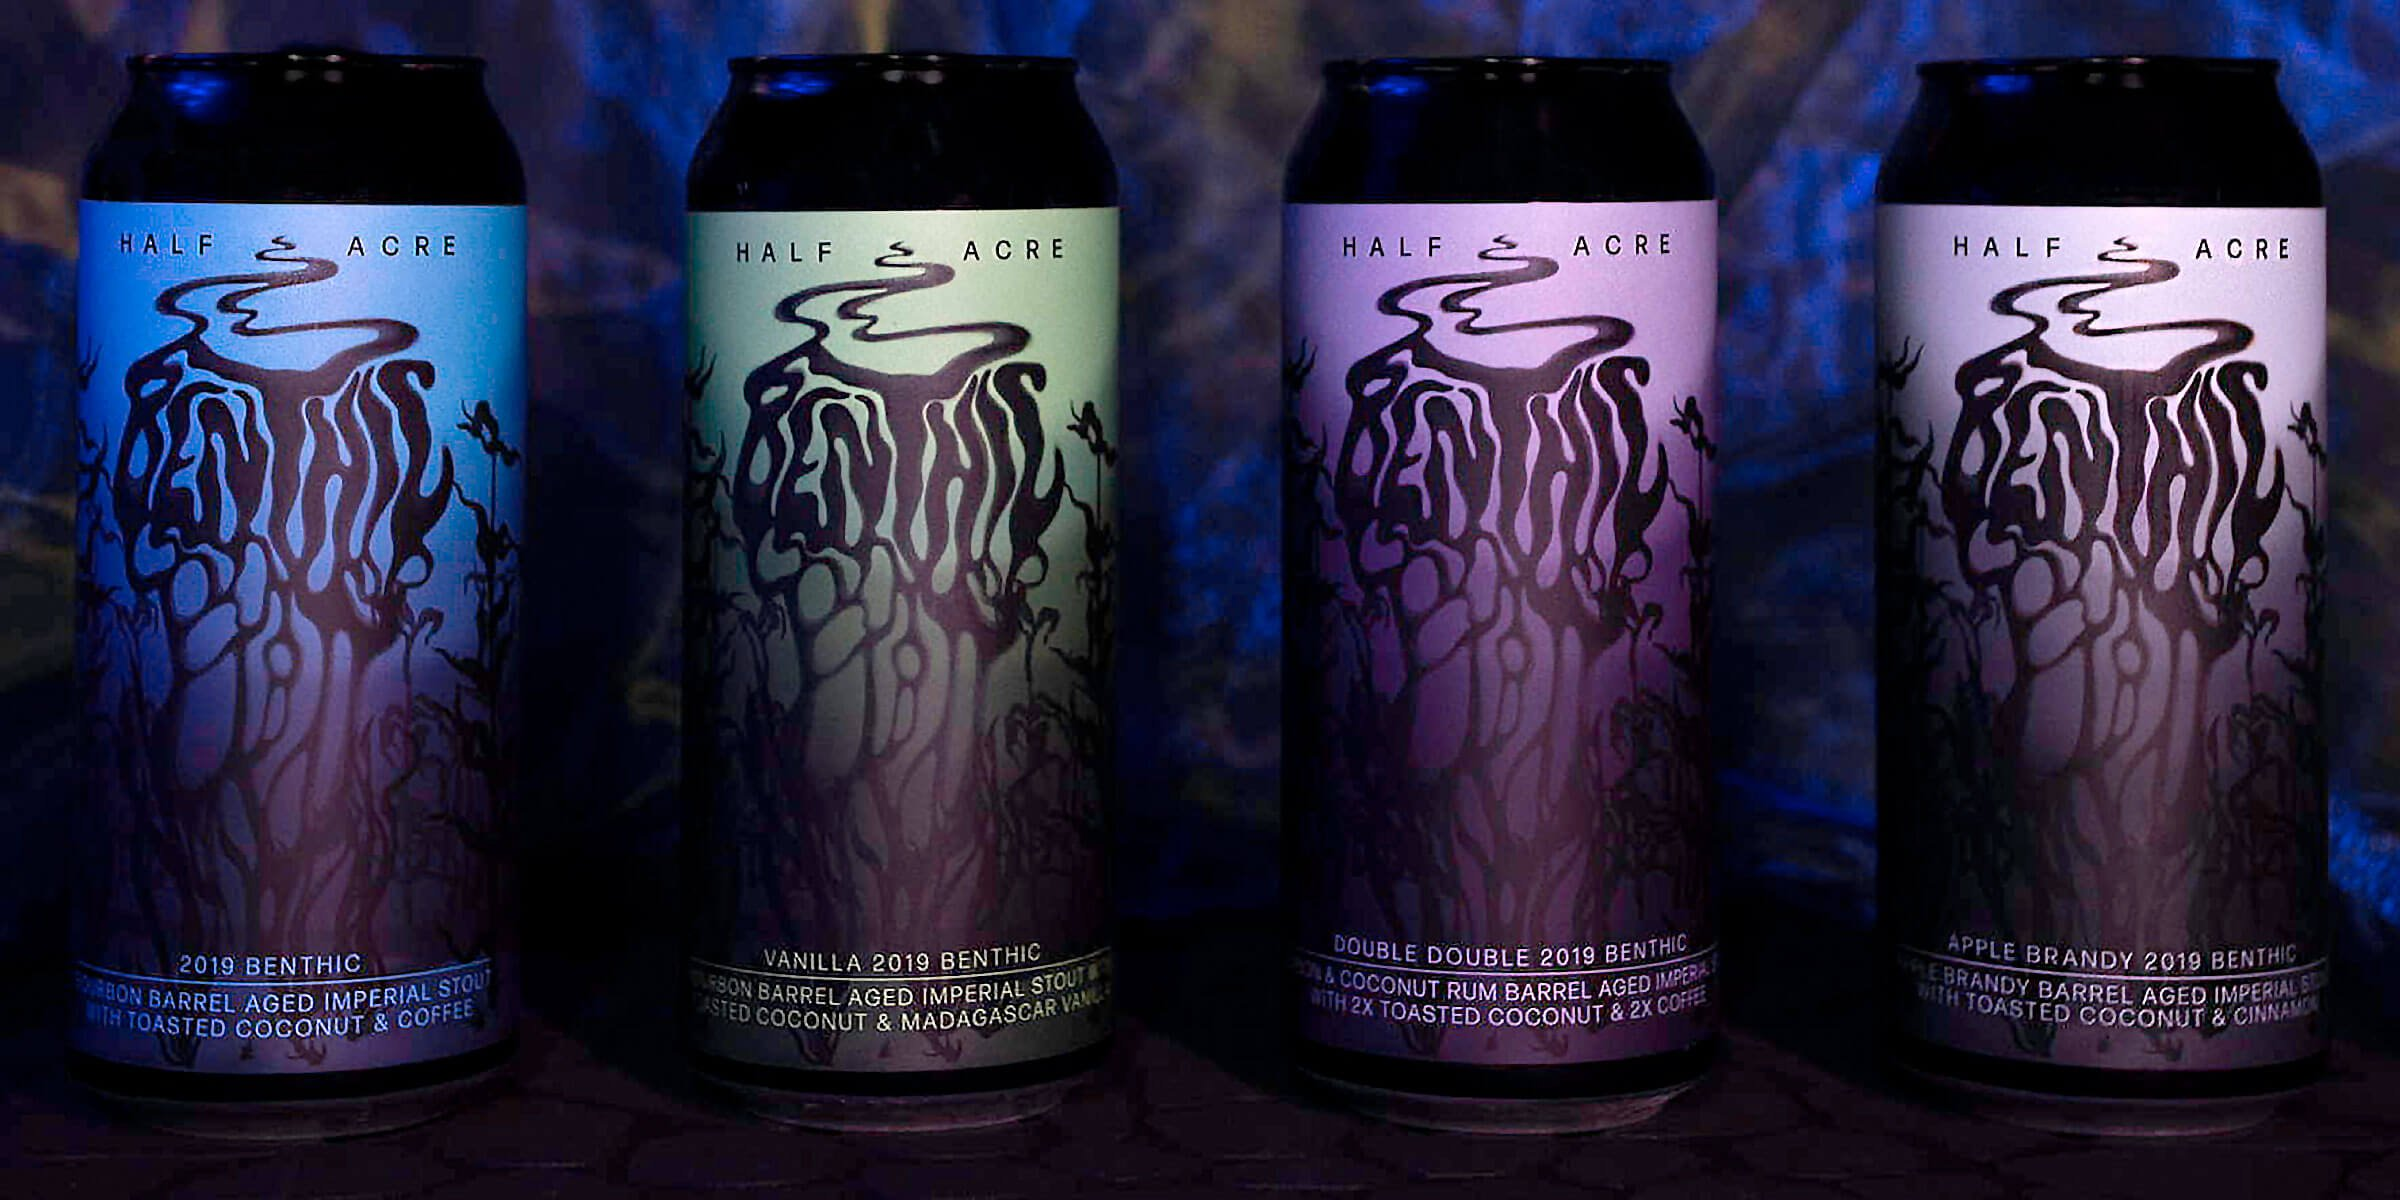 Cans of the 2019 Benthic Imperial Stout and its three variants by Half Acre Beer Company